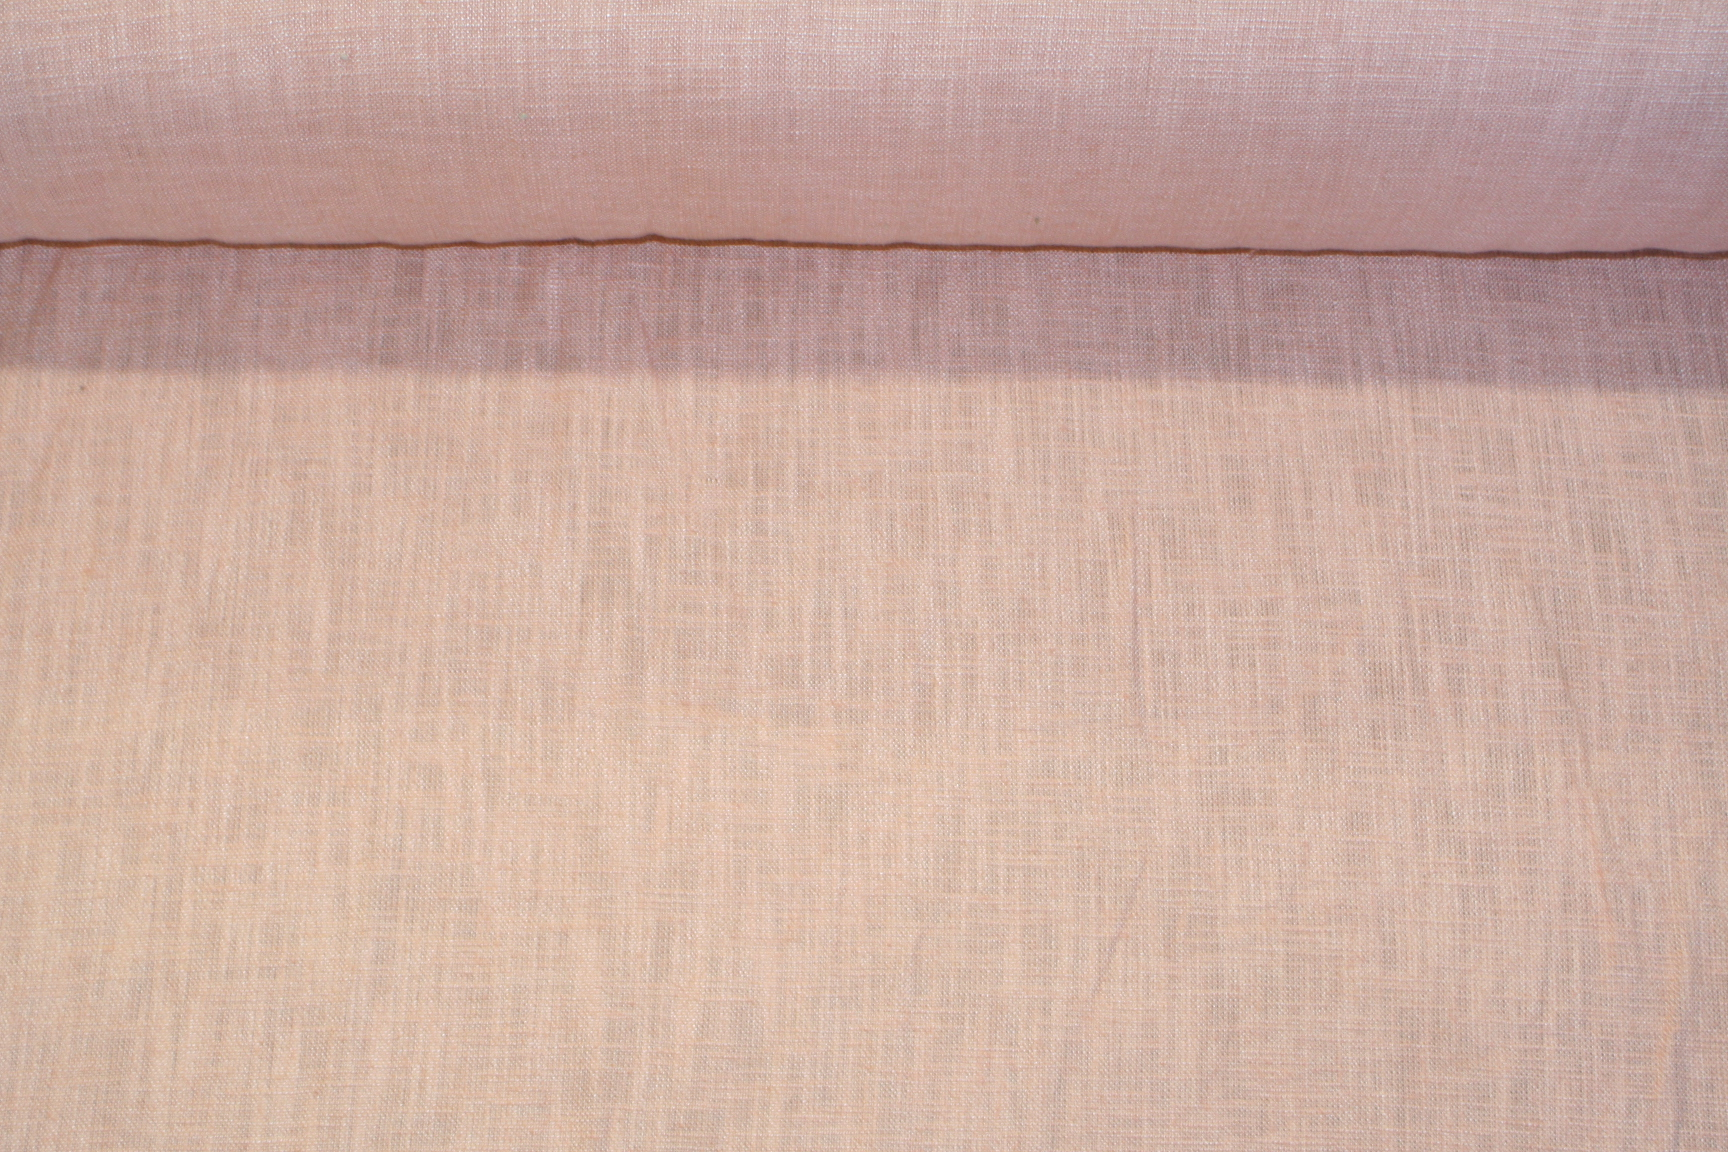 Straight Down View Of This Window Treatment Home Decor Fabric At Schindler S Upholstery Shop